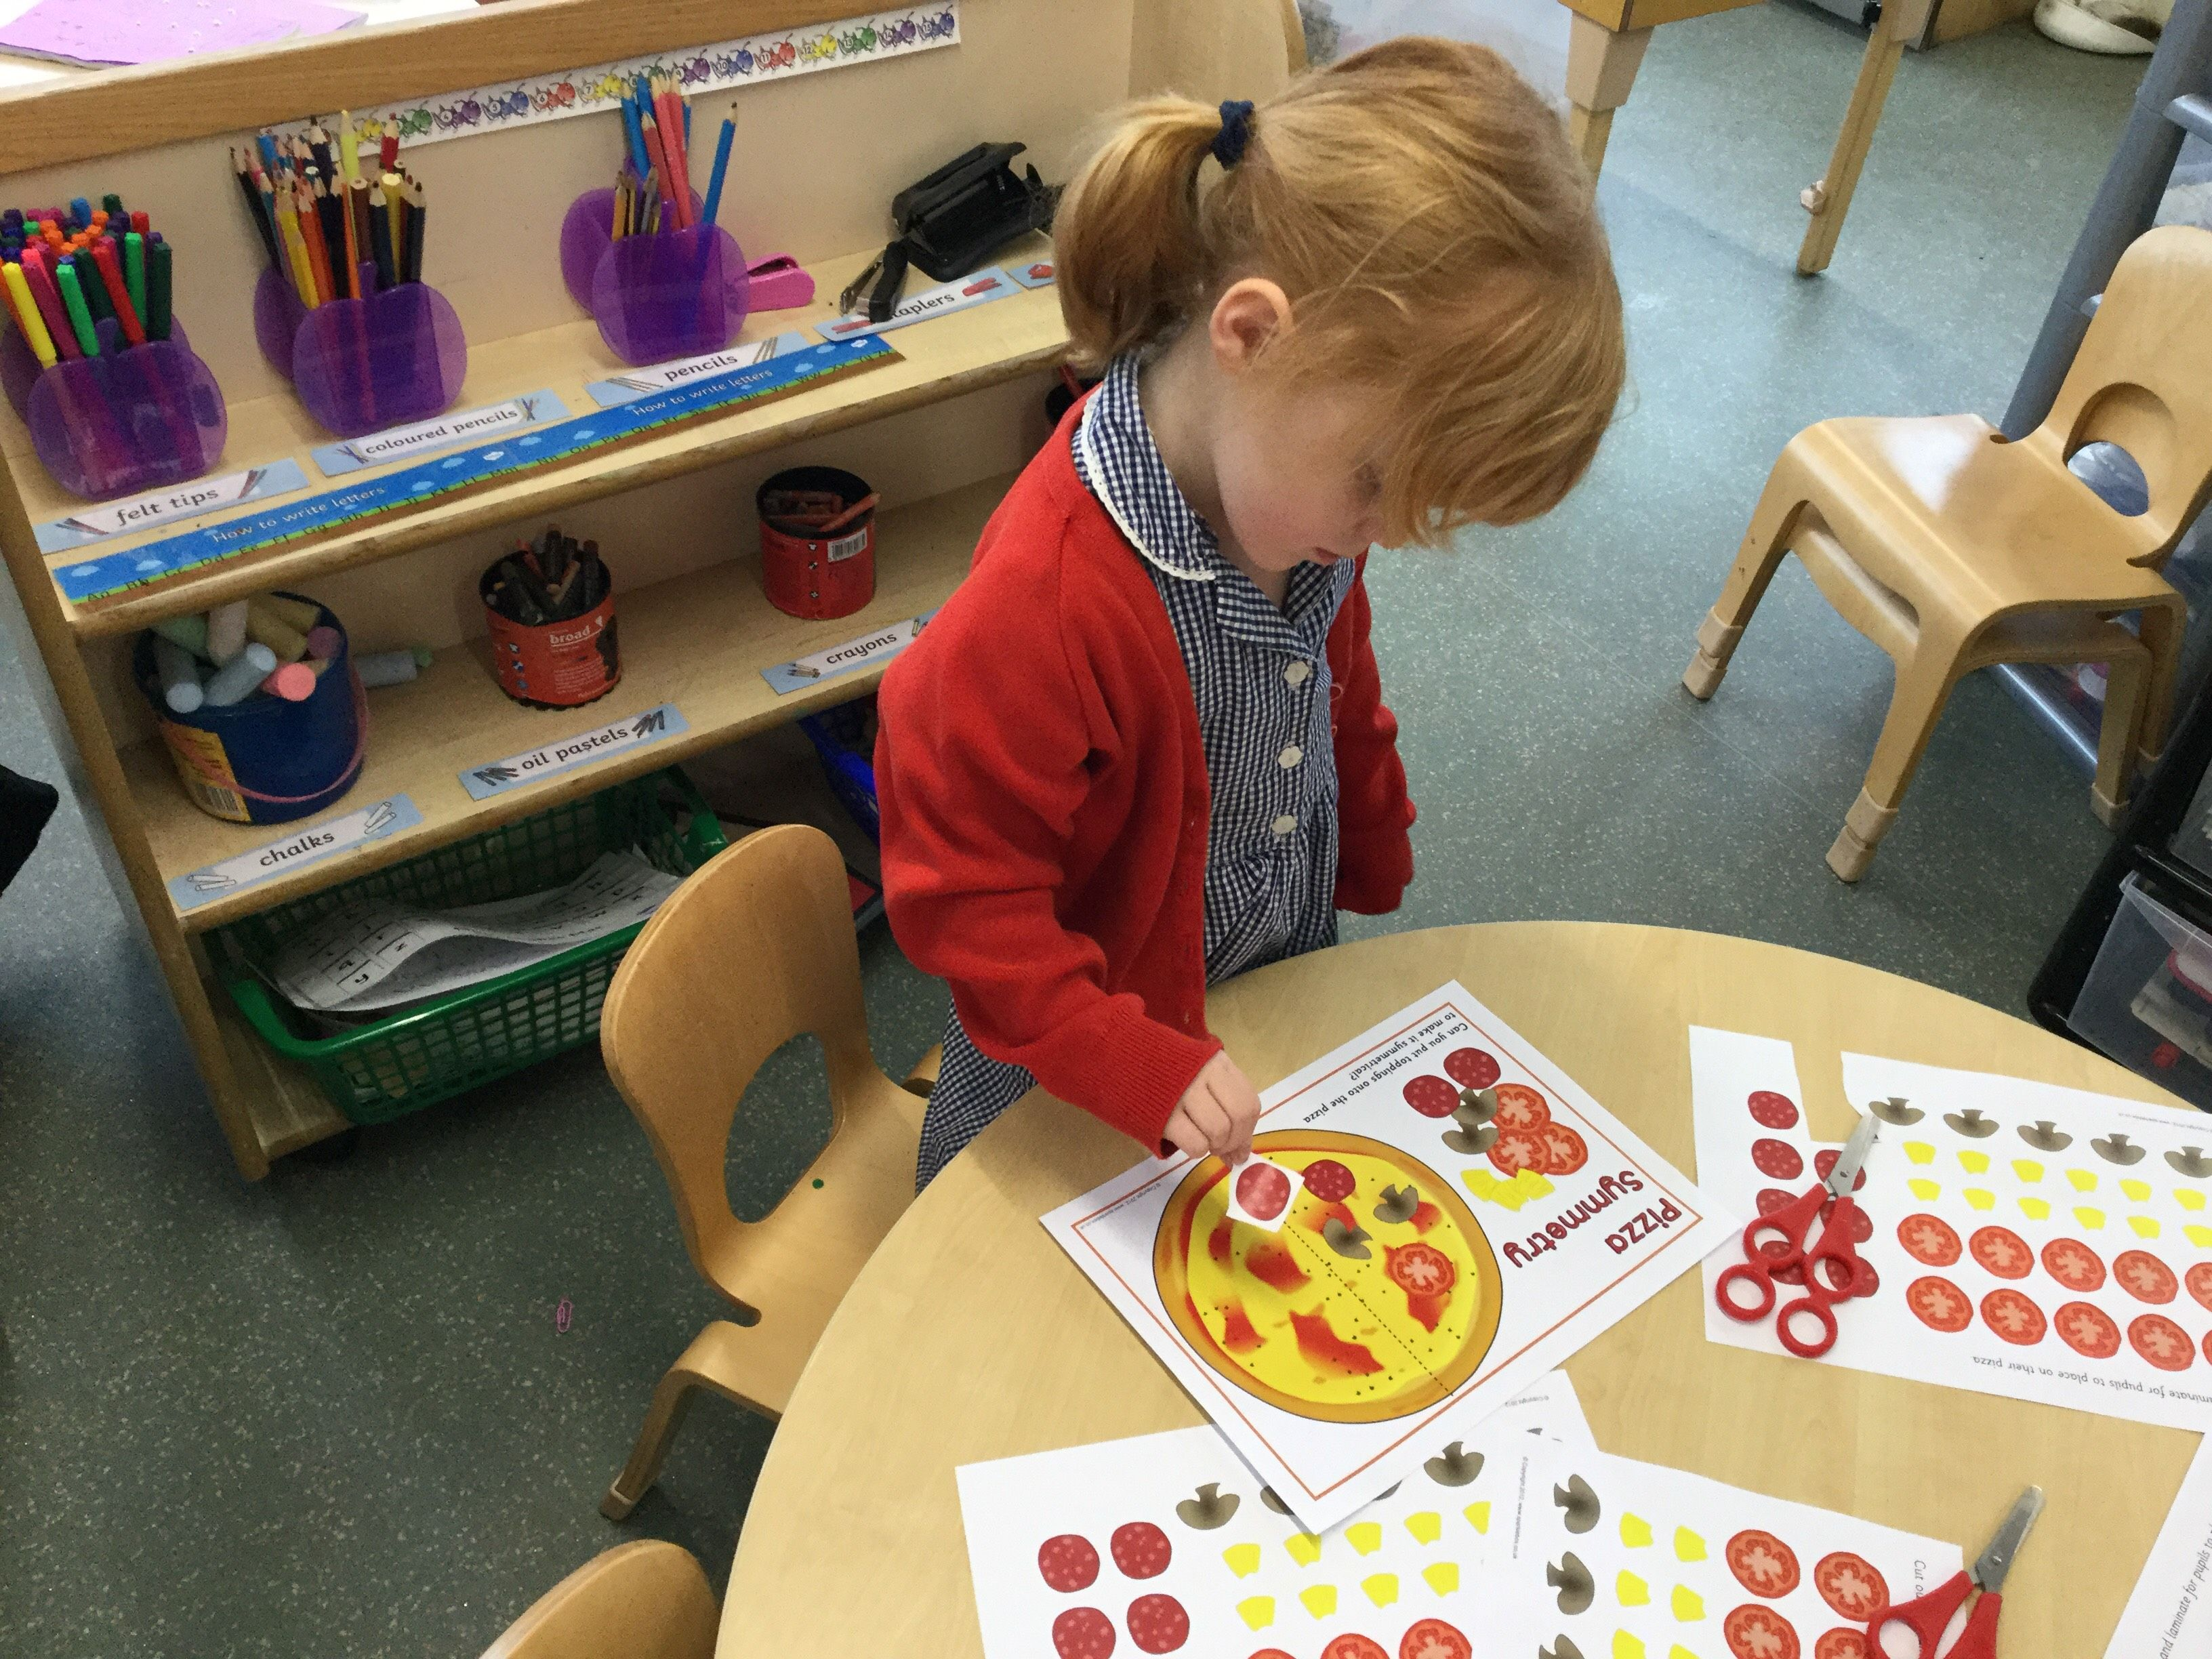 This Morning We Have Been Thinking About Symmetry The